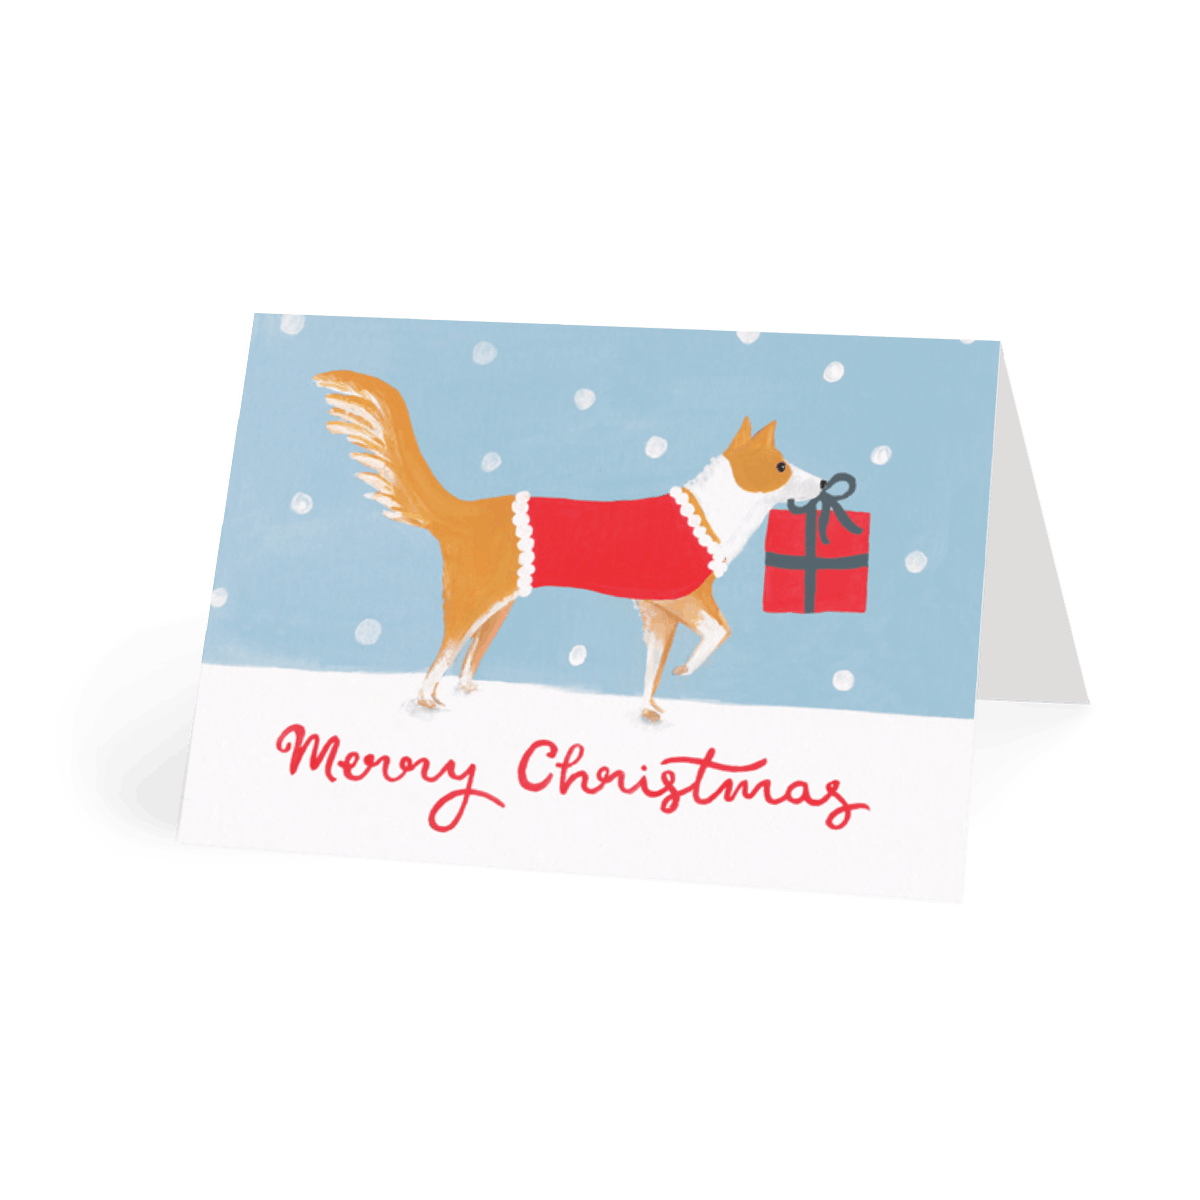 Https%3a%2f%2fwww.papier.com%2fproduct image%2f24863%2f14%2fchristmas collie 6201 avant 1498648015.png?ixlib=rb 1.1